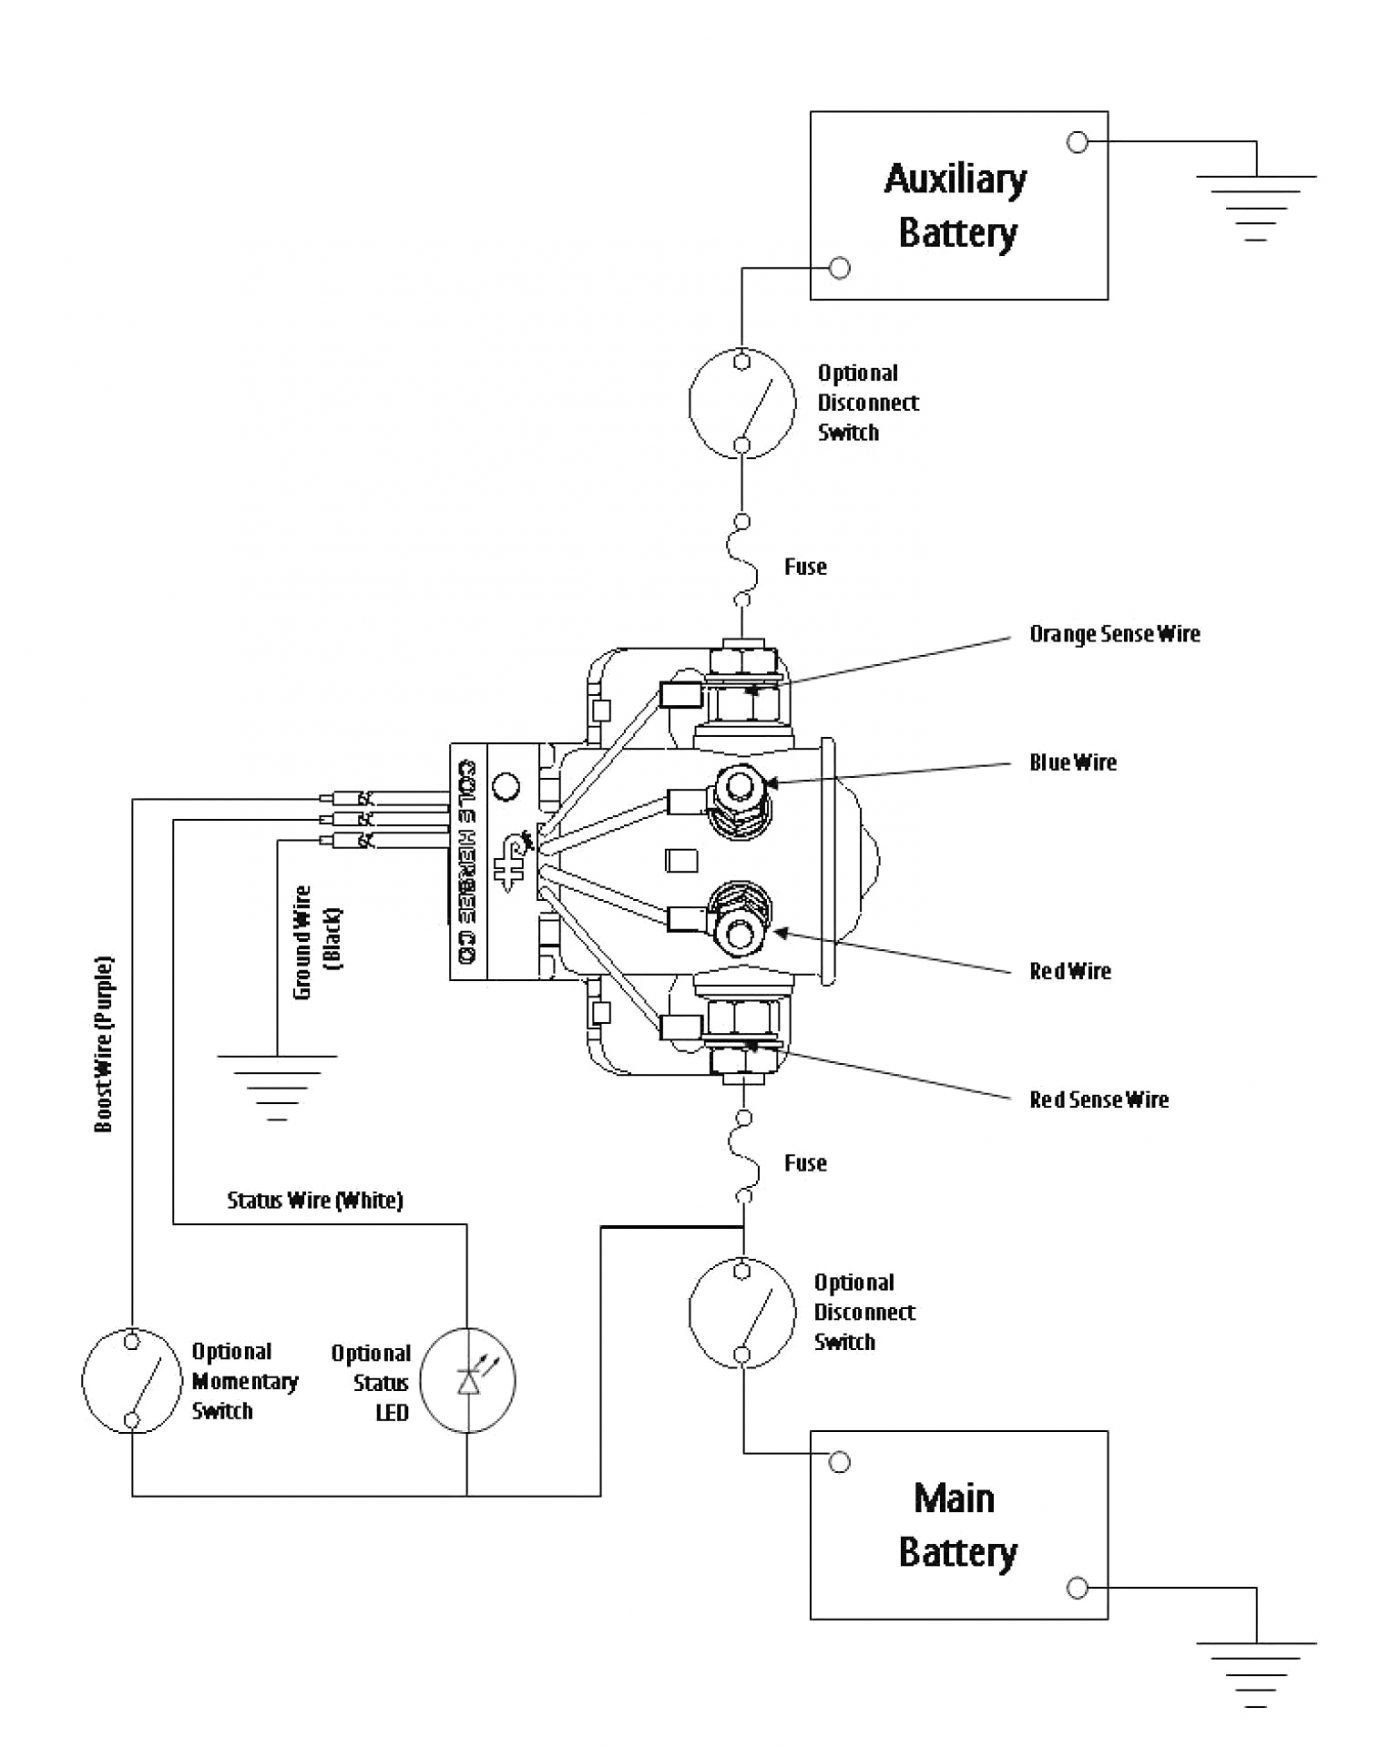 stinger battery isolator wiring diagram Collection-stinger battery isolator wiring diagram Collection Battery isolator Wiring Diagram Fresh Battery isolator Wiring Diagram 4-n